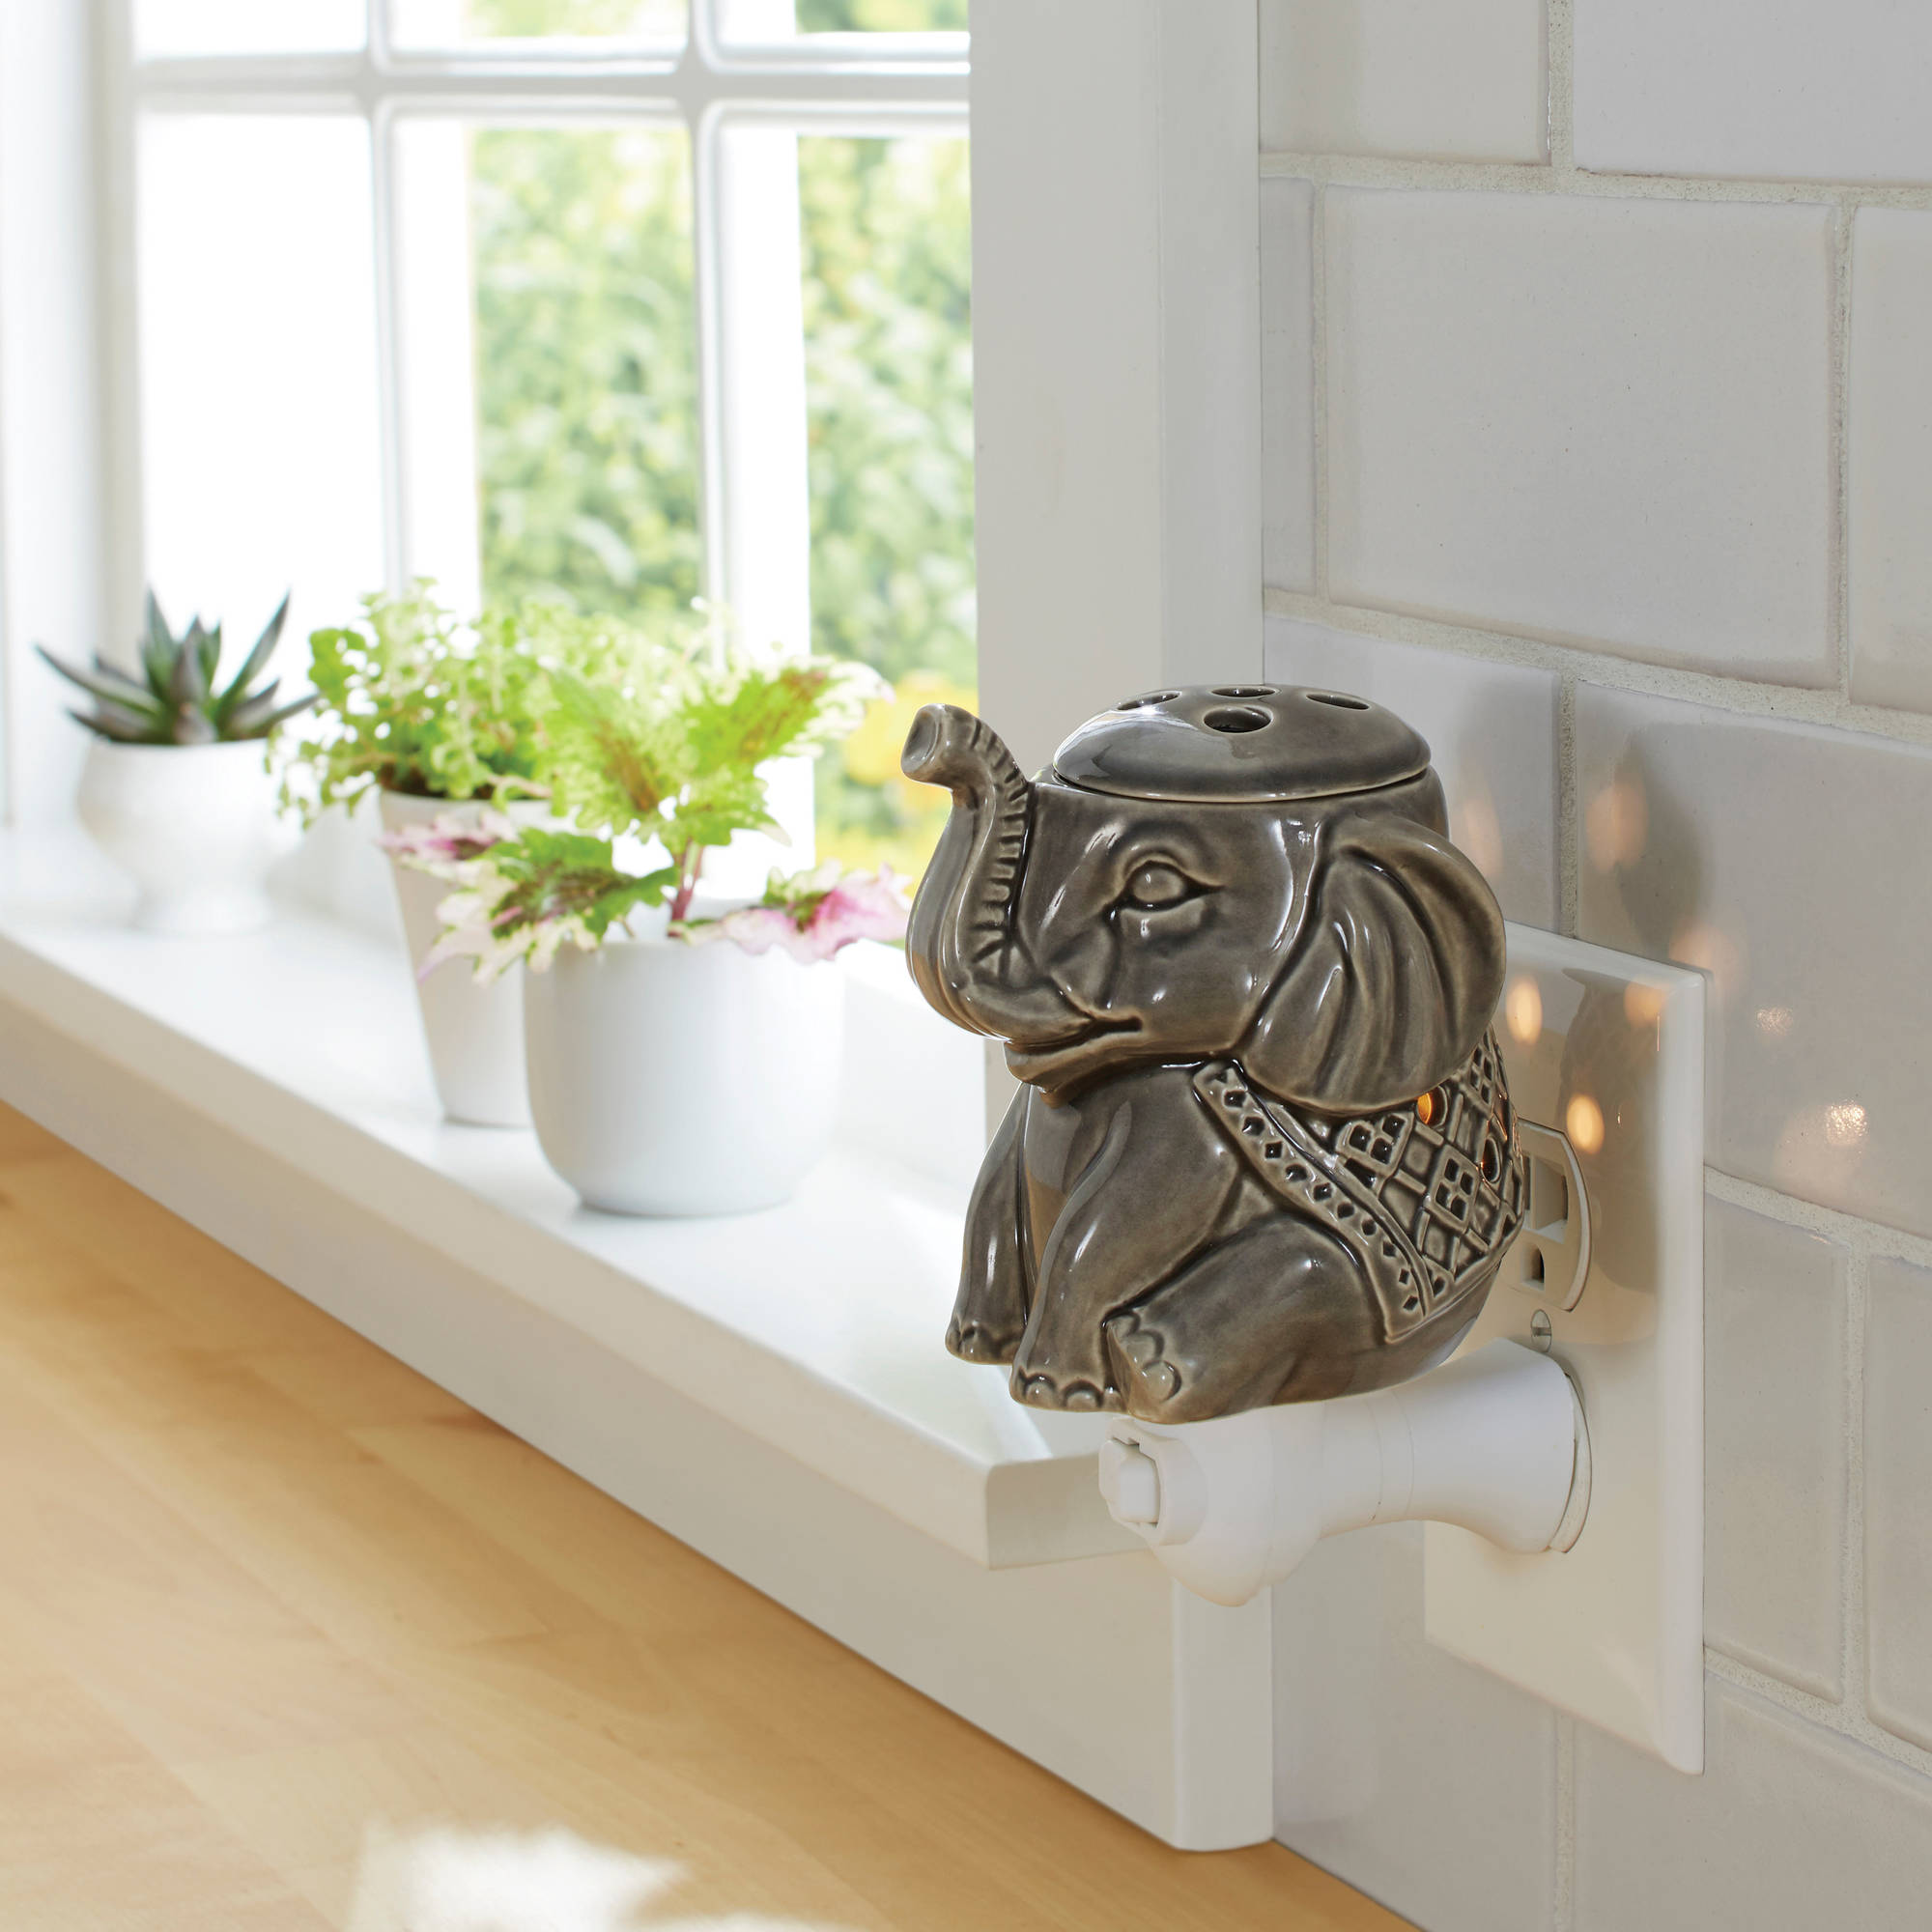 Better Homes and Gardens Accent Wax Warmer Elephant